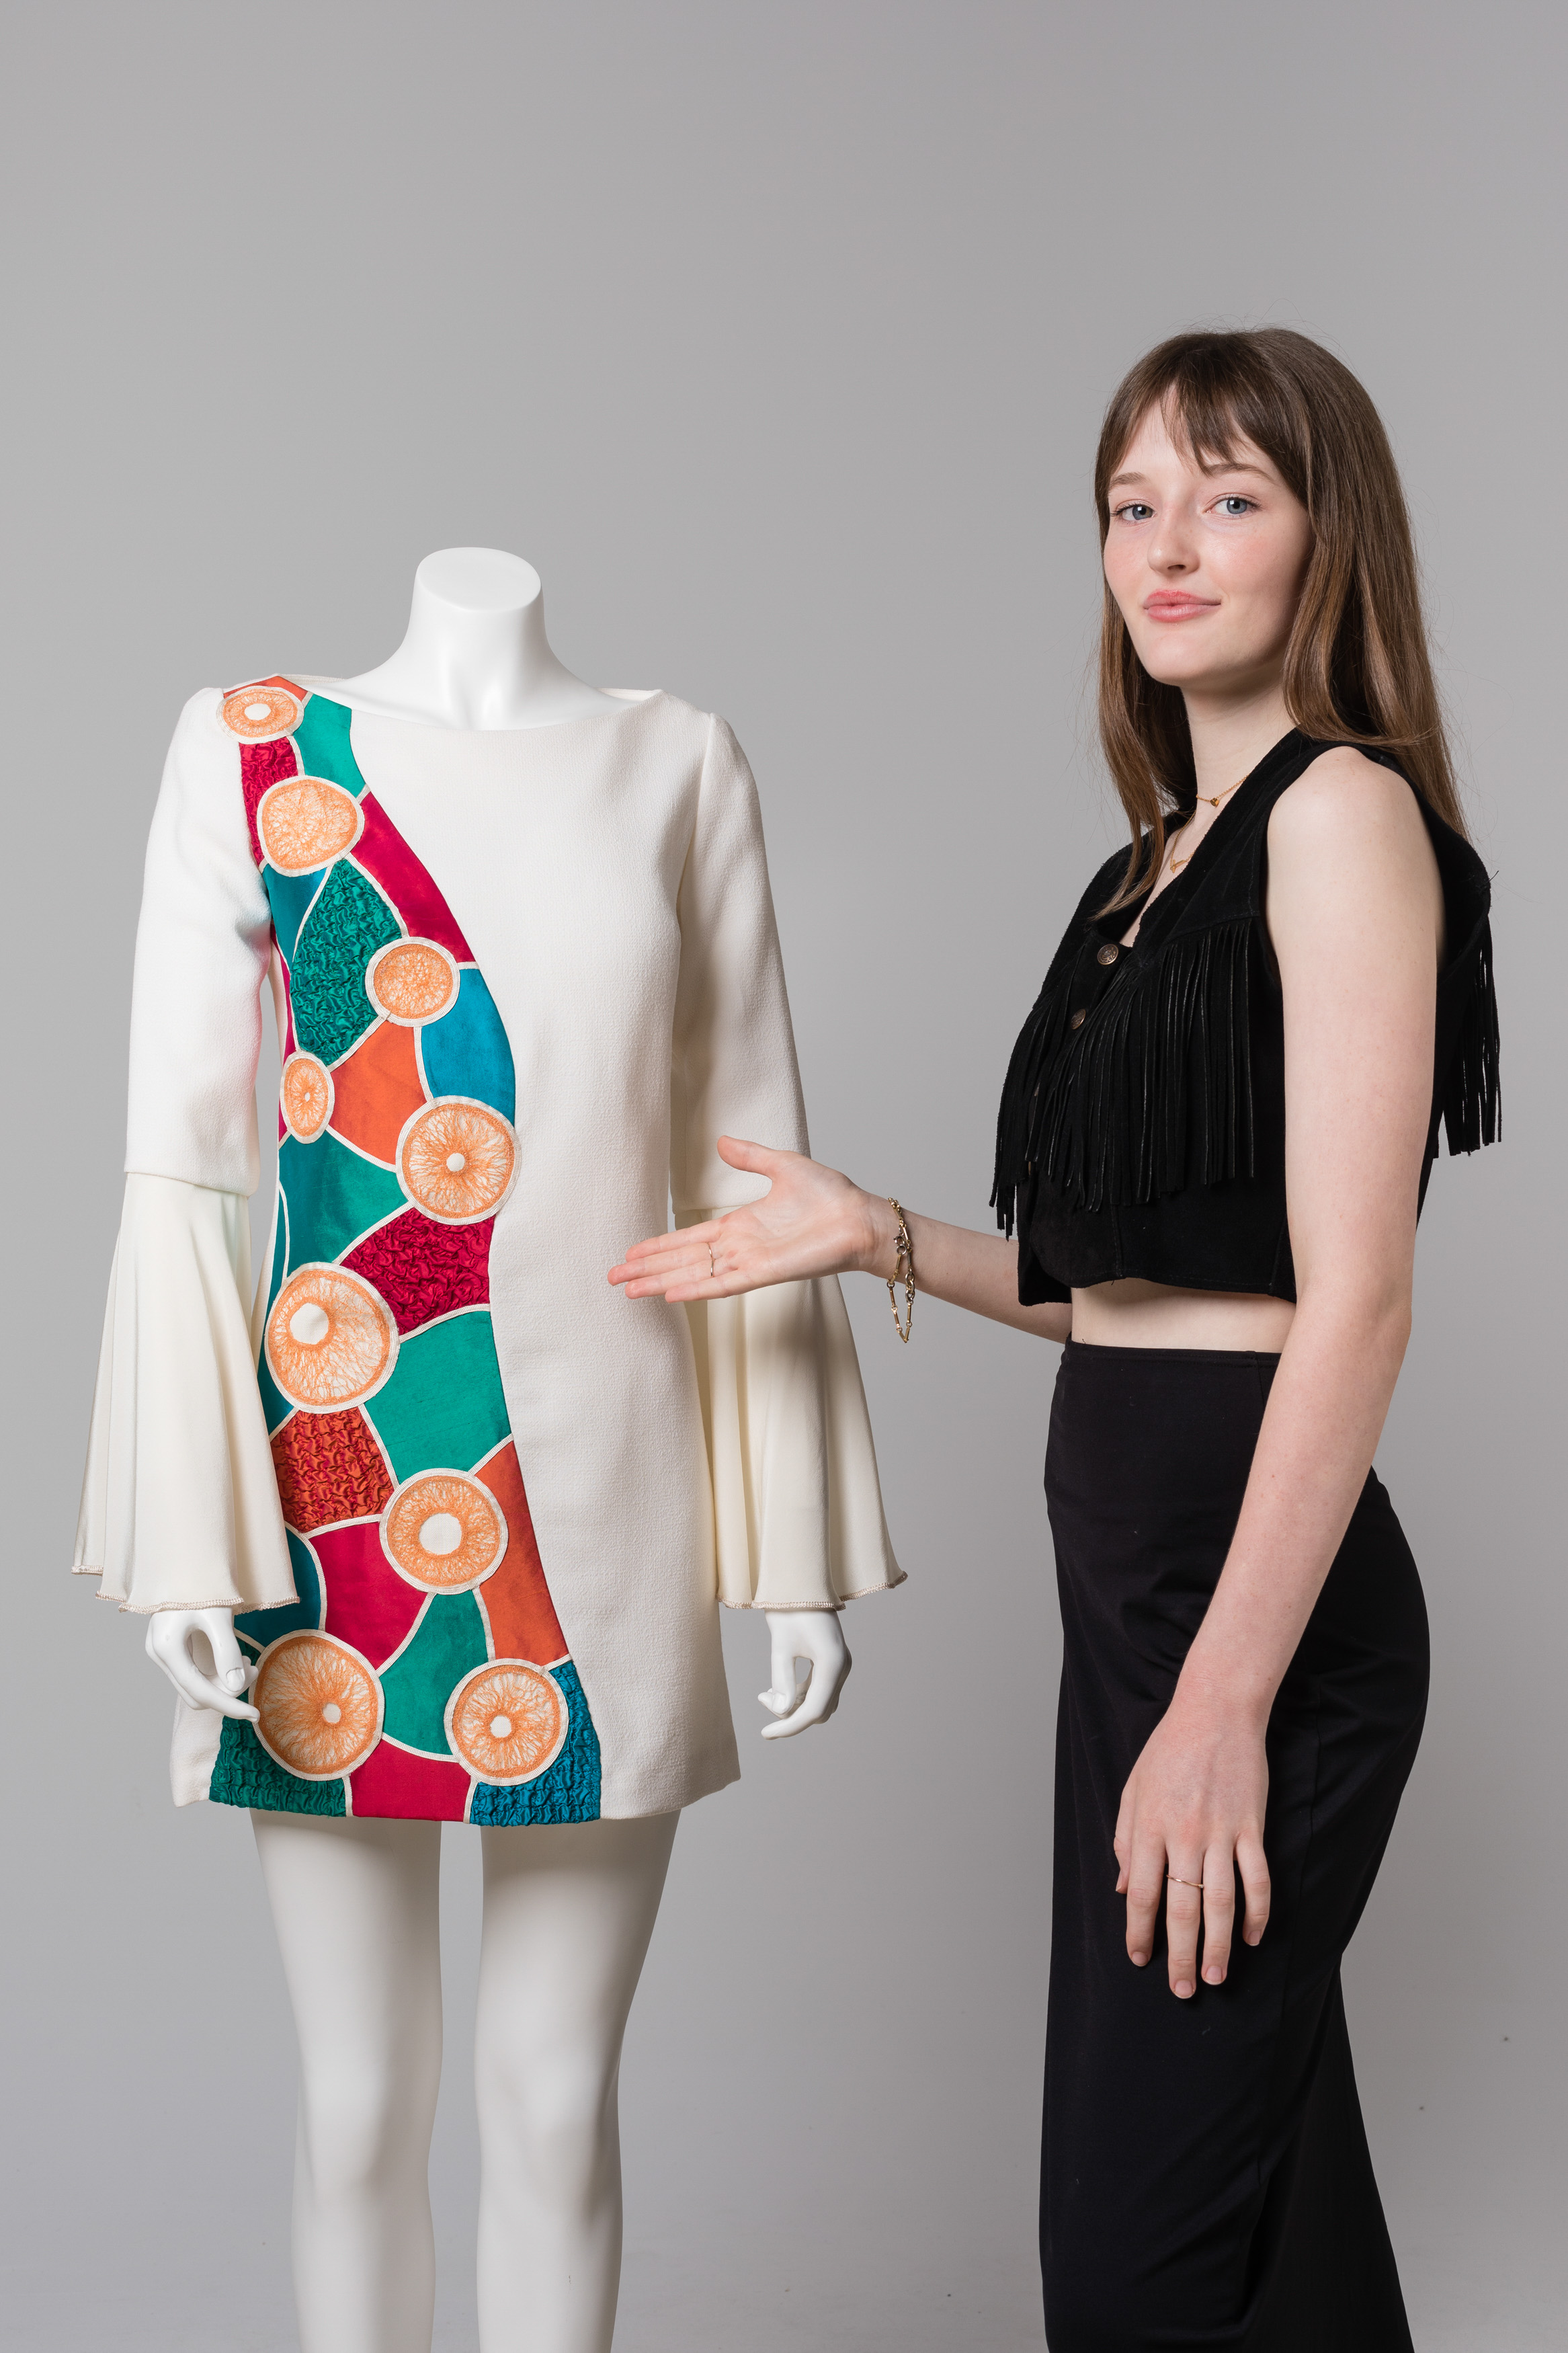 A young woman gesturing to a mannequin beside her. The mannequin wears a long sleeved dress with a colourful pattern down one side and white fabric on the other.